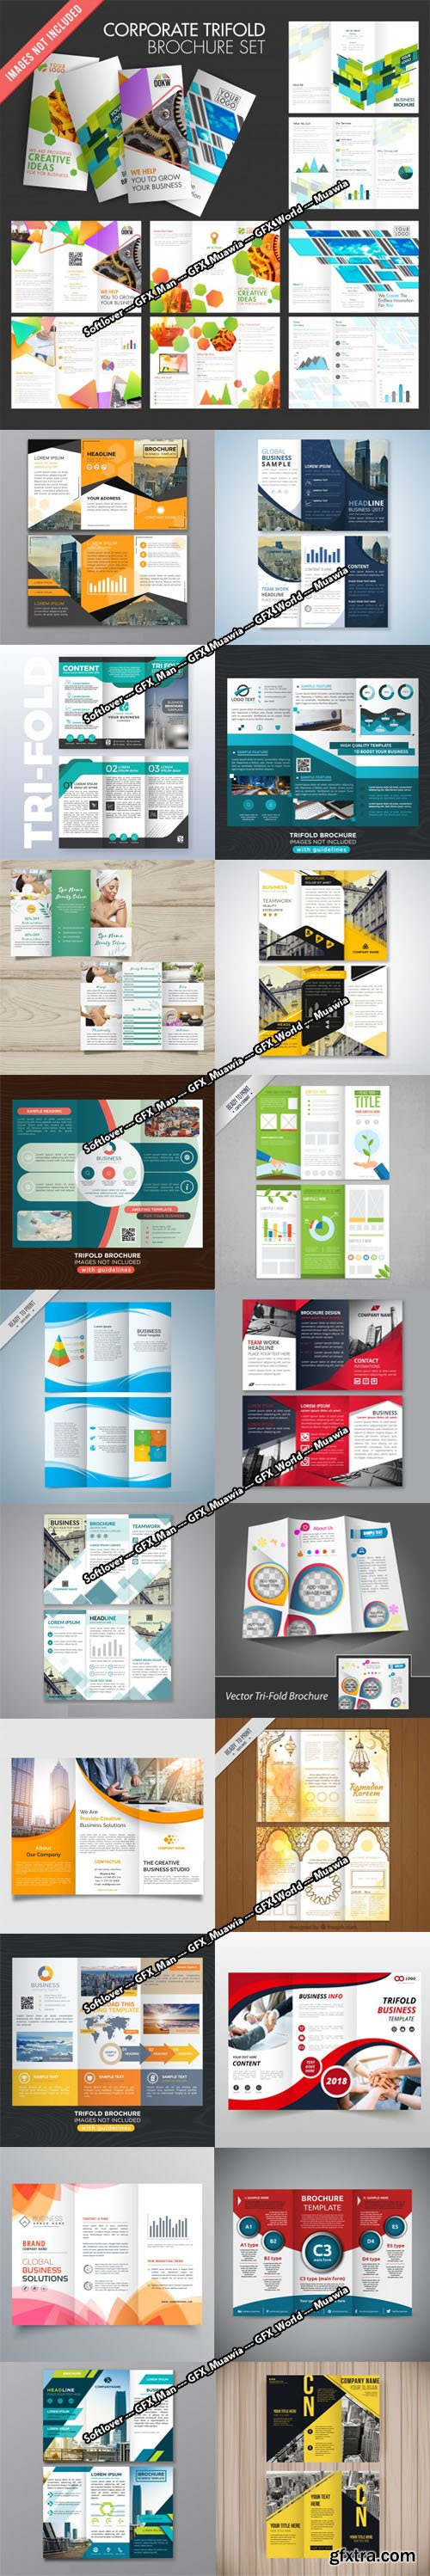 21 Professional Trifold Brochure Vector Templates Collection [Ai/EPS]